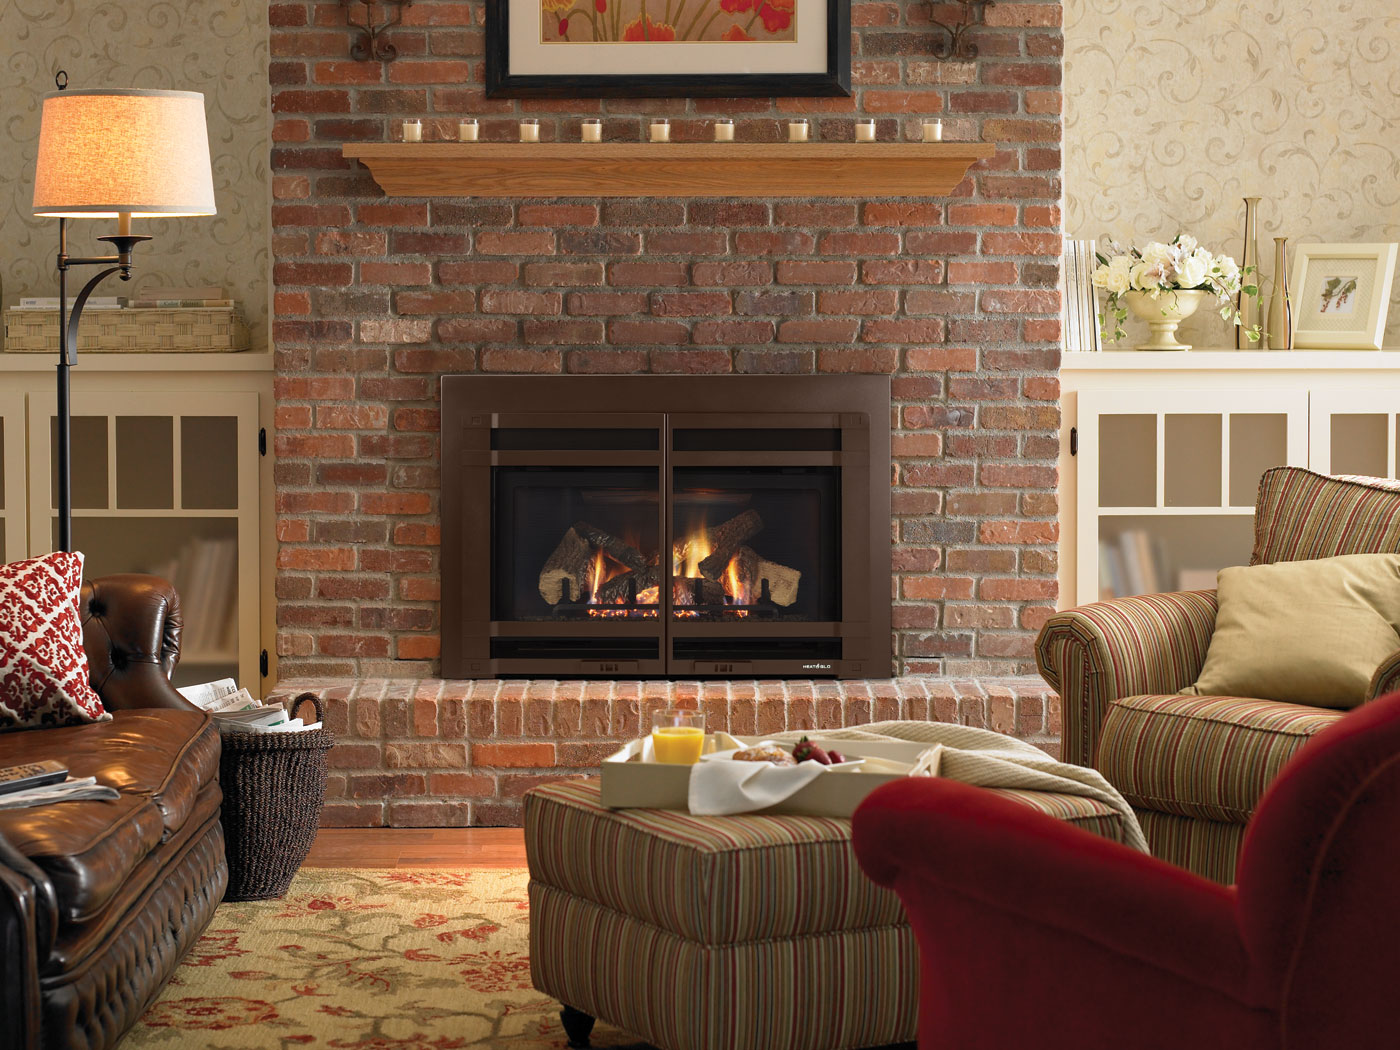 Decorating Ideas > Gas  Hot Tubs, Fireplaces, Patio Furniture  Heat N  ~ 143239_Transform The Look Fireplace Decorating Ideas